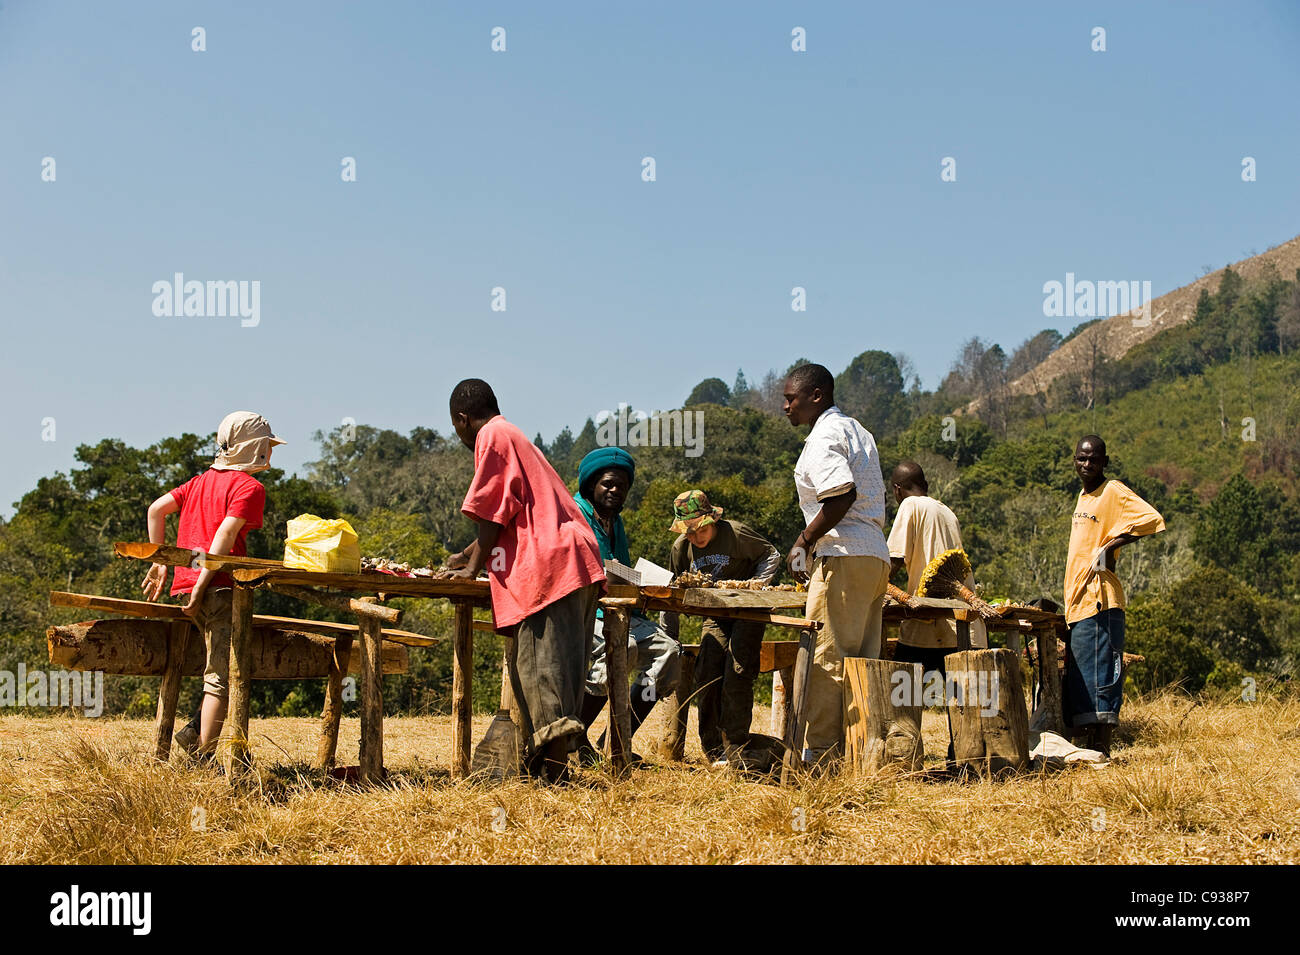 Malawi, Zomba Plateau.  Local men sell semi-precious minerals and wild flowers at a stall near Chingwe's Hole. - Stock Image